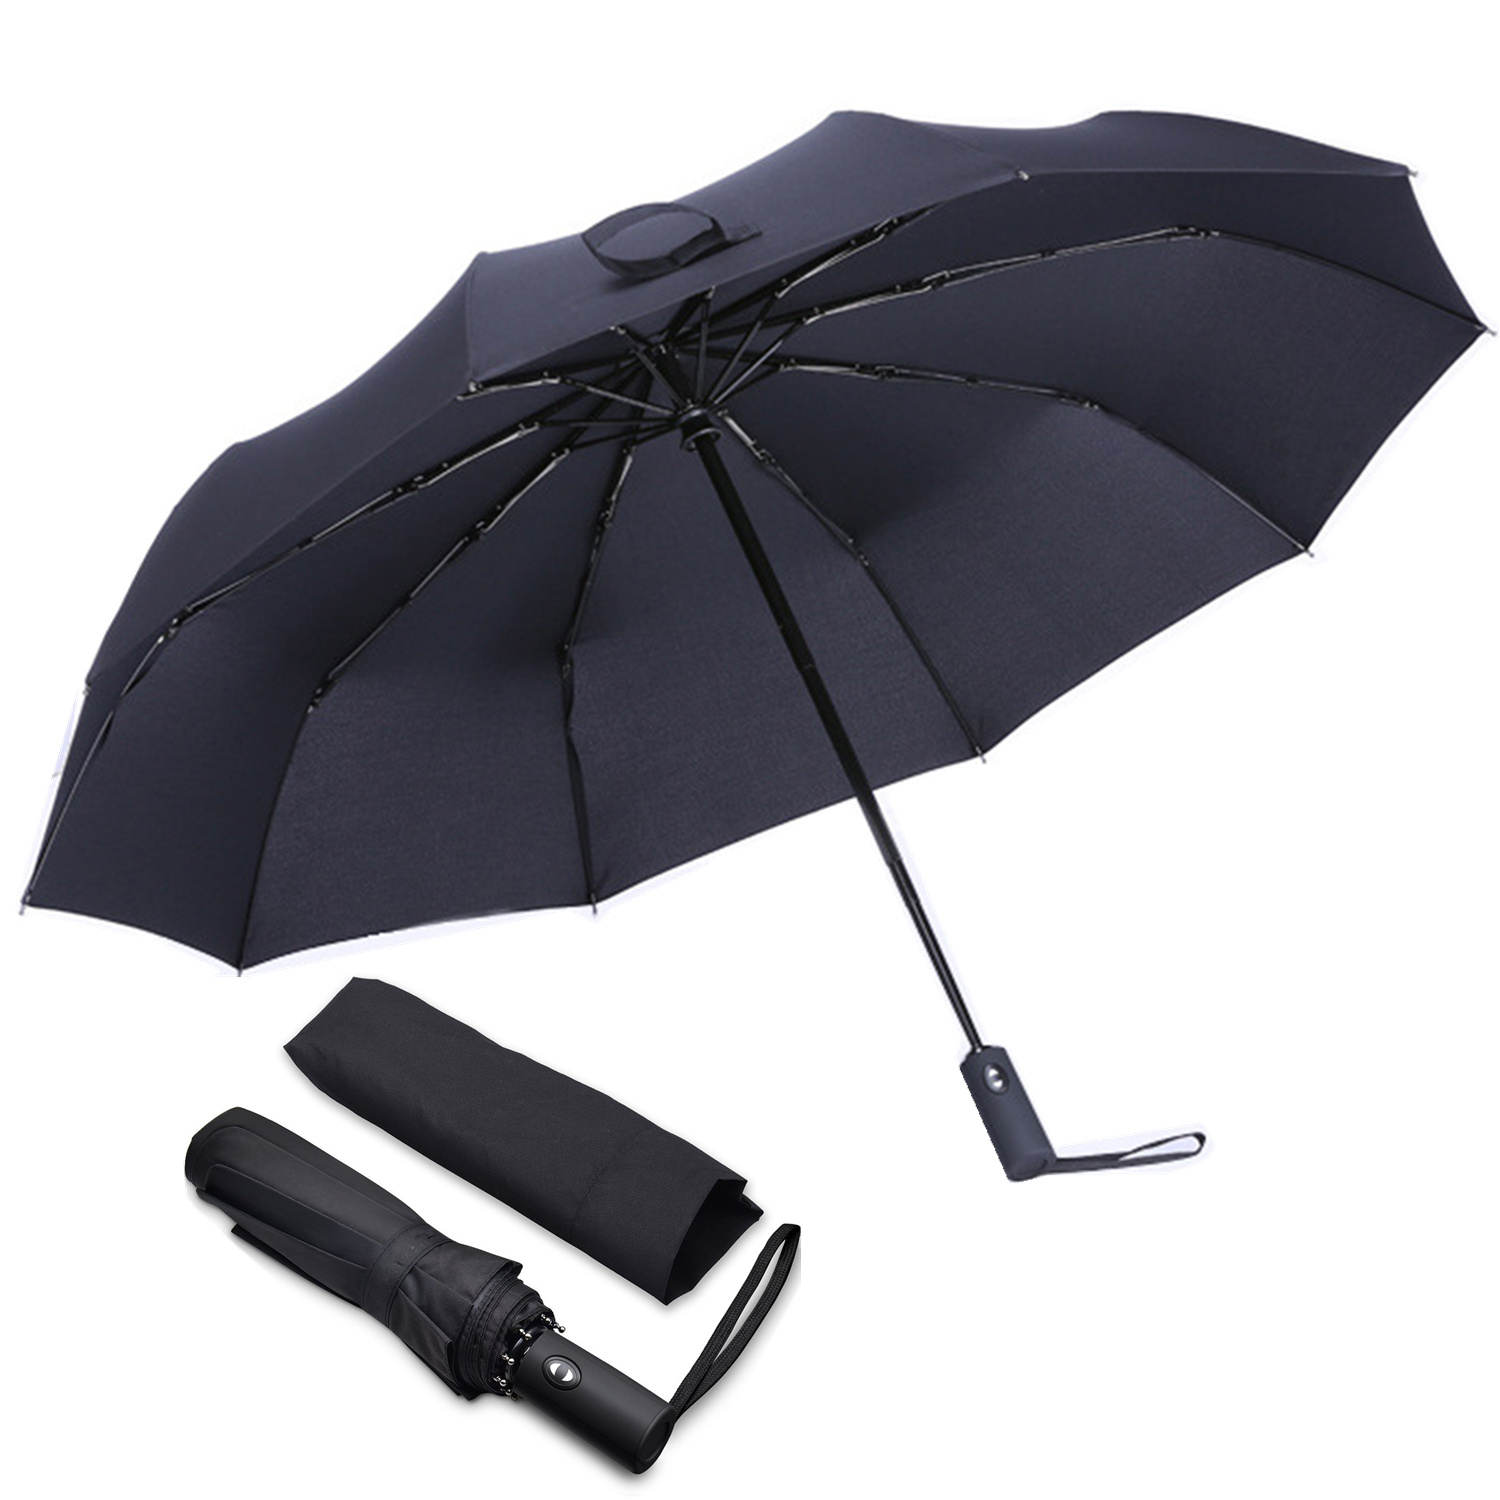 YOOAP folding umbrella windproof automatic umbrella stable Compact and durable lightweight ergonomic handle adultYOOAP folding umbrella windproof automatic umbrella stable Compact and durable lightweight ergonomic handle adult